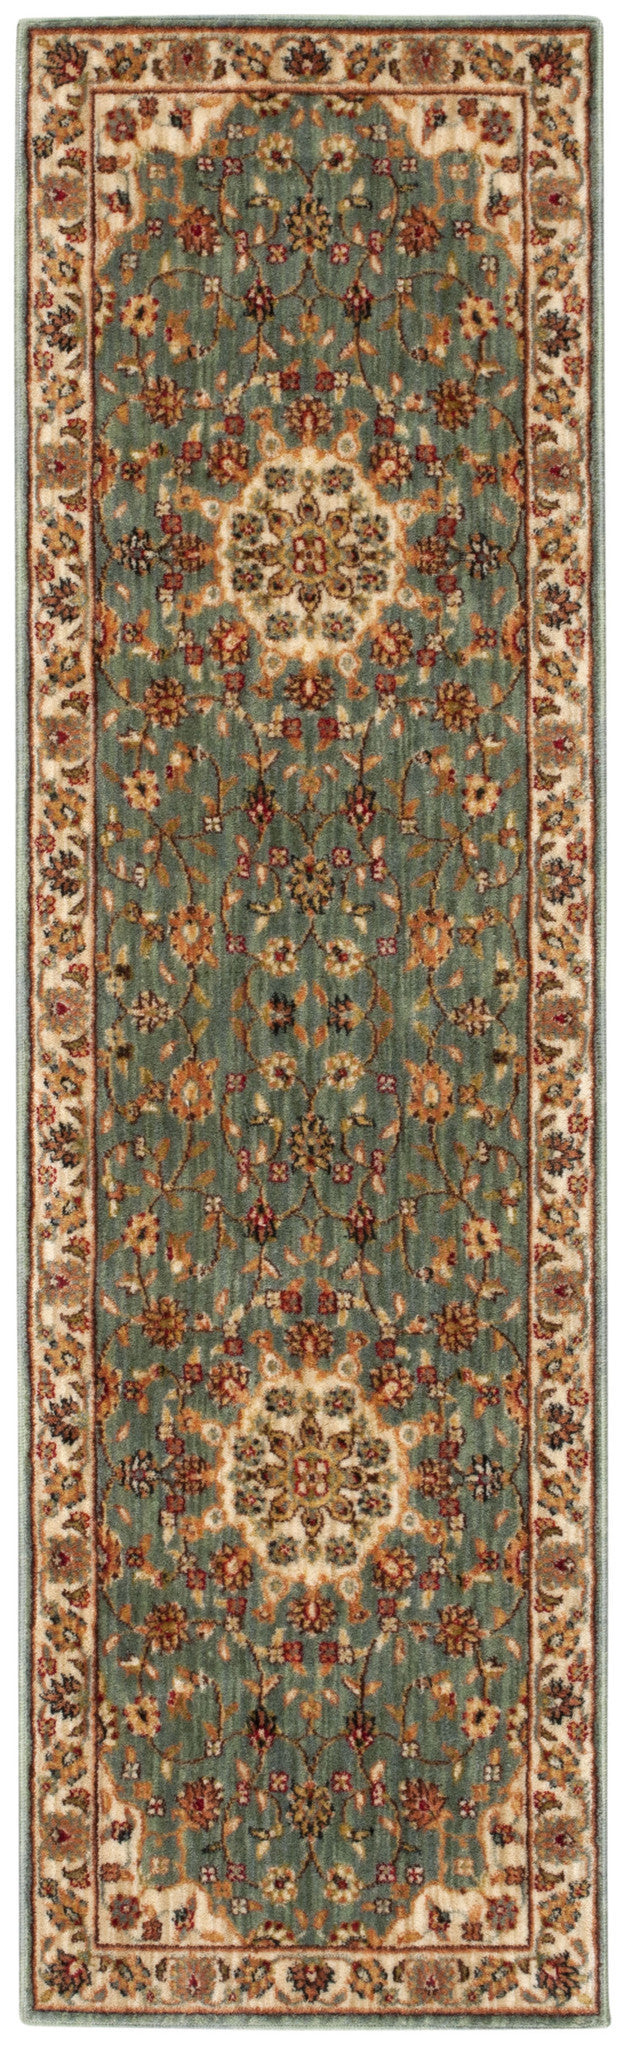 Kathy Ireland Ancient Times Palace Teal Area Rug By Nourison BAB02 TL